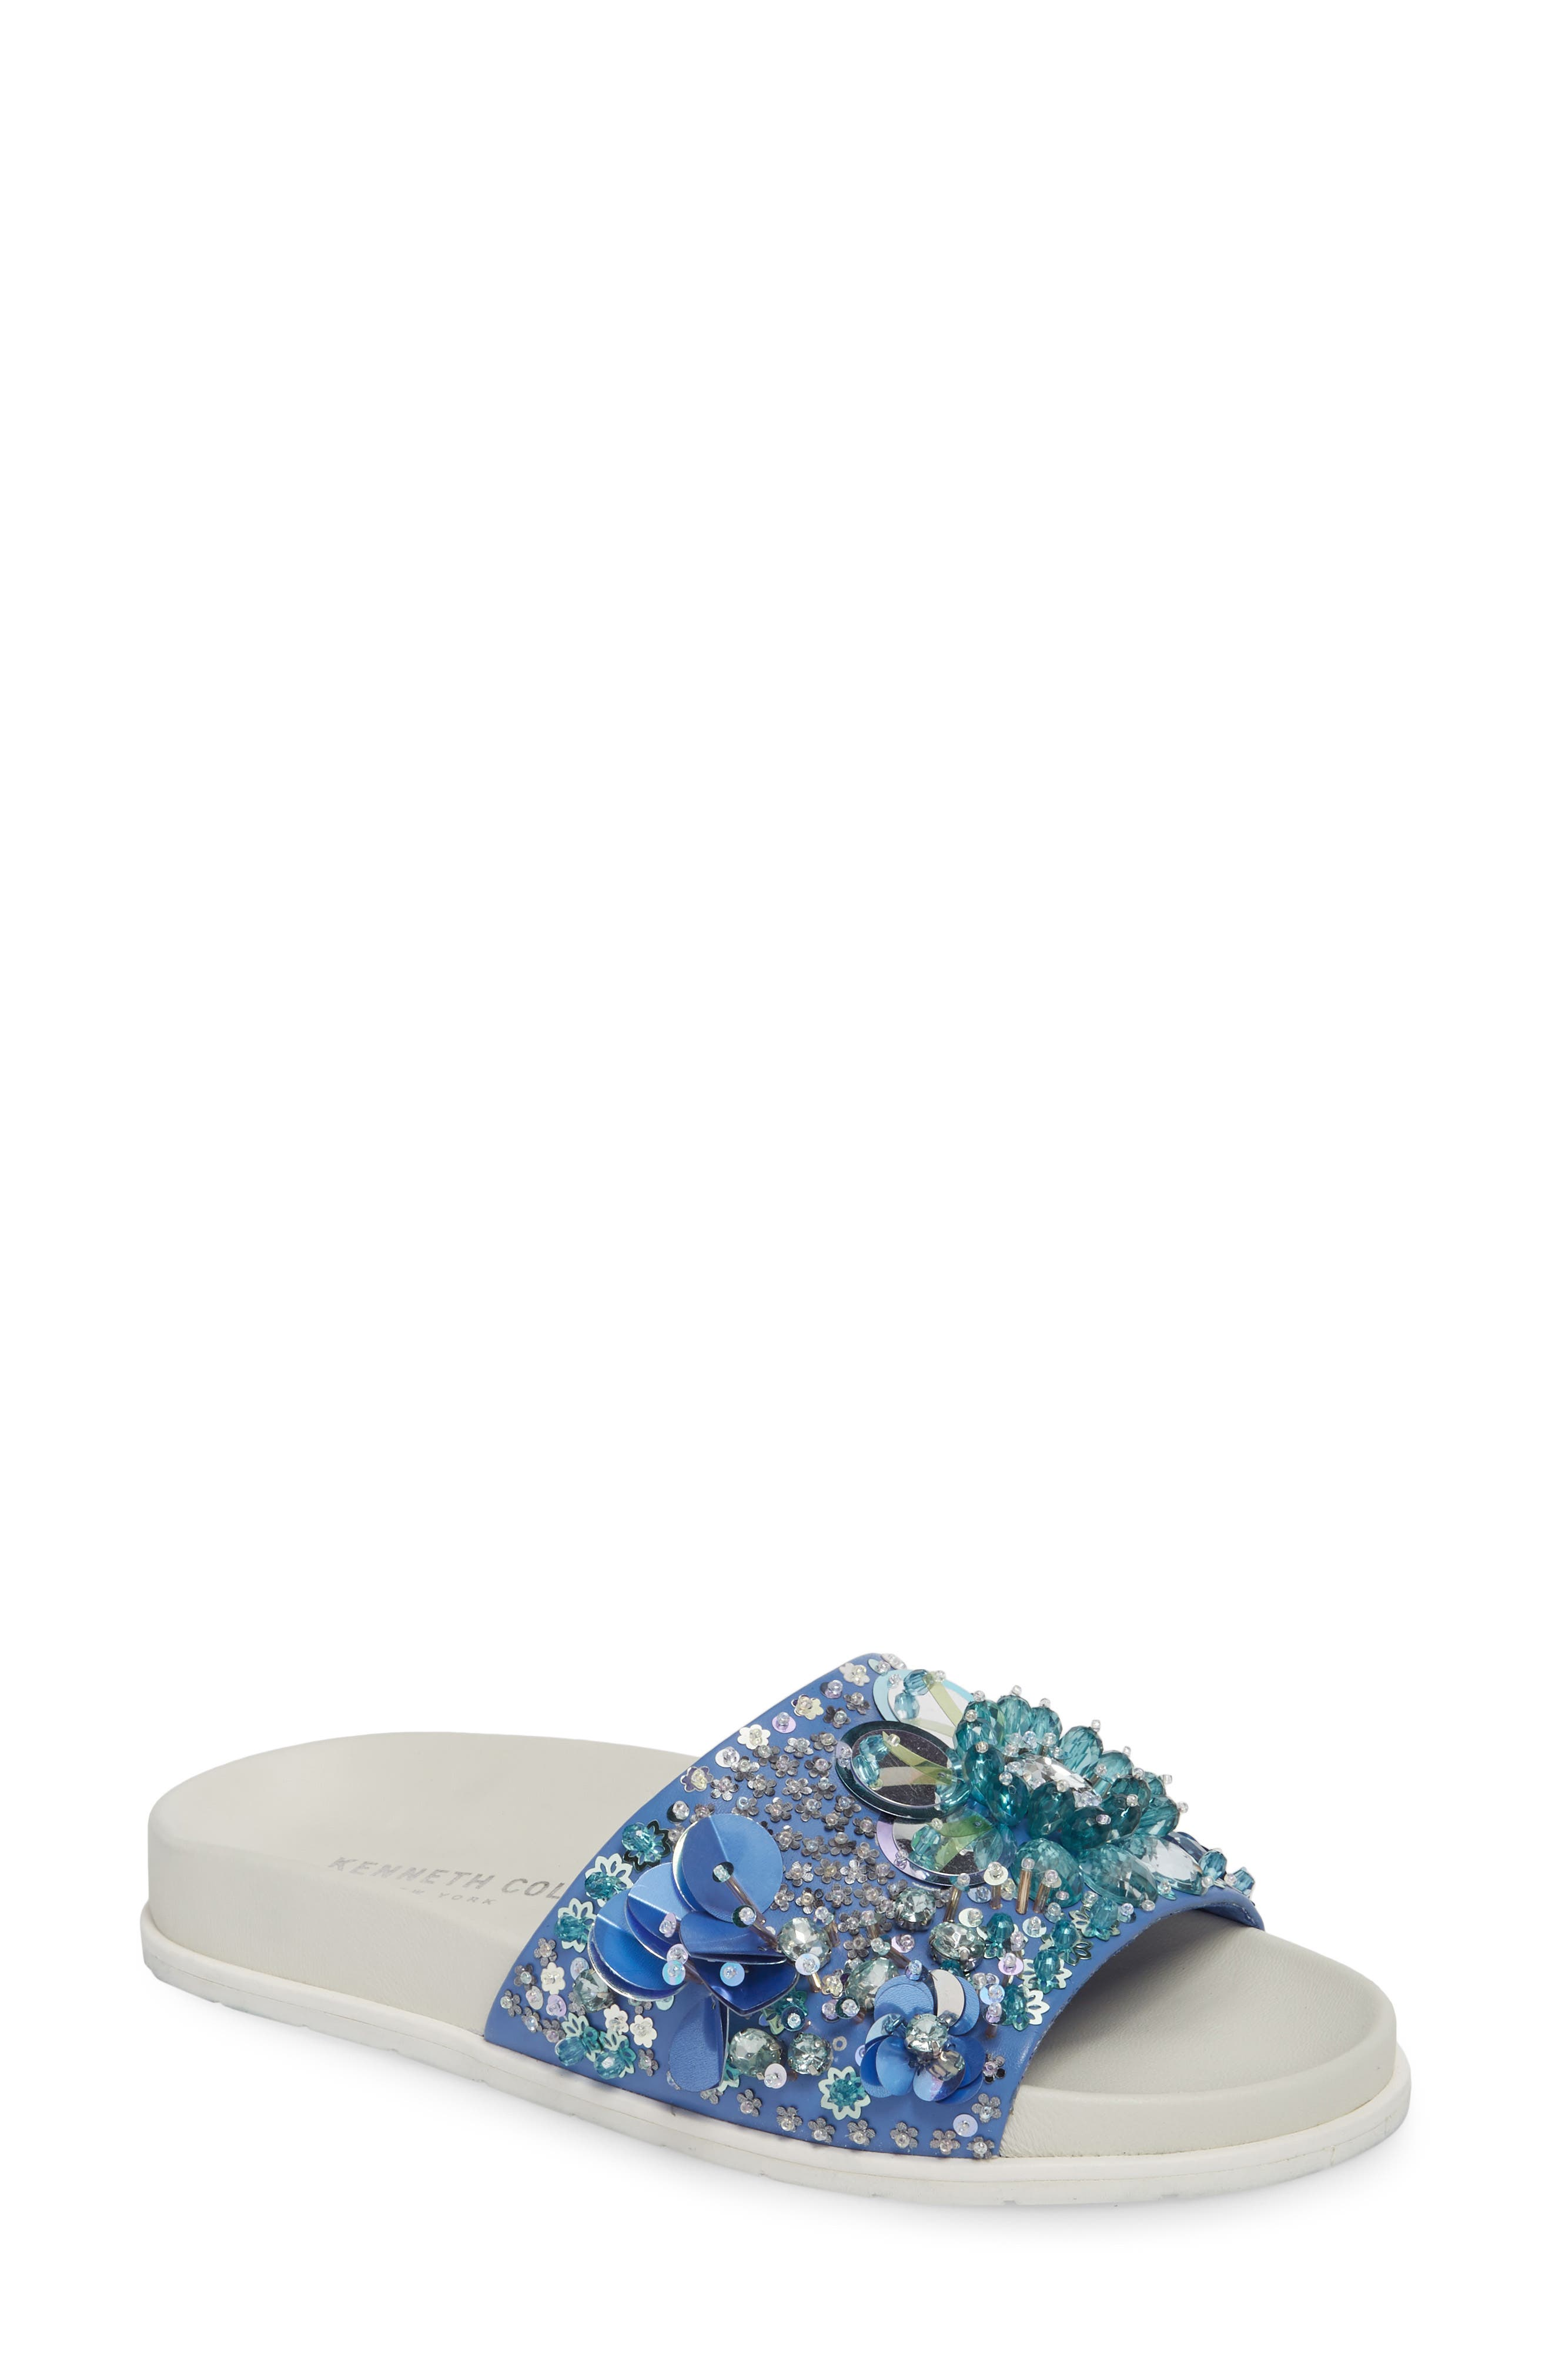 Xenia Sequin Embellished Sandal,                         Main,                         color, Blue Multi Fabric